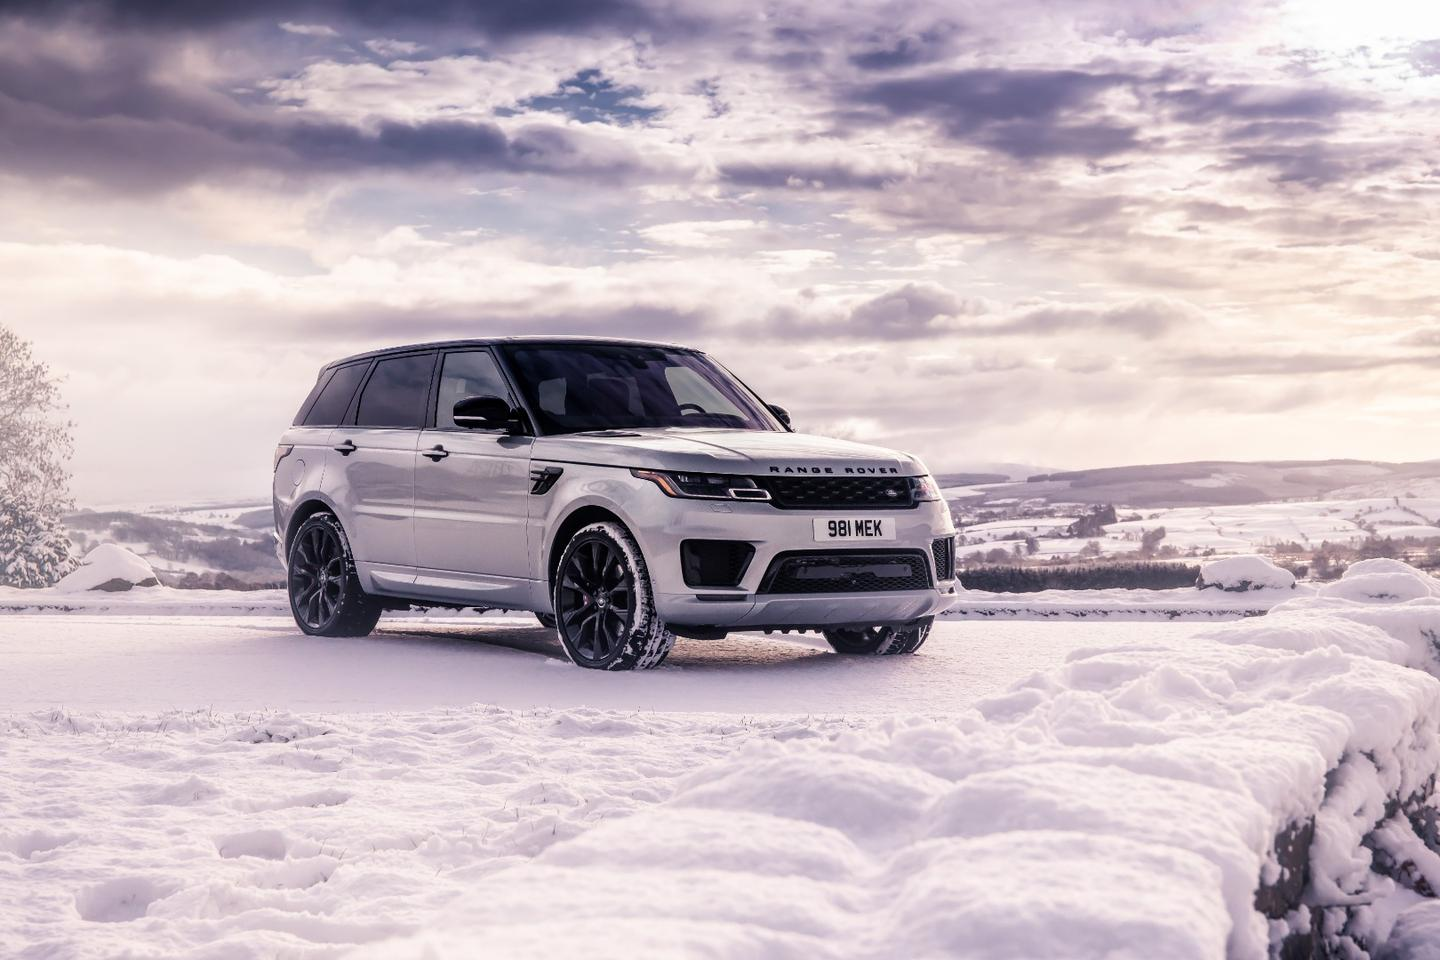 The new special edition Range Rover HST is the first model to benefit from the new Ingenium I-6 with mild hybrid system